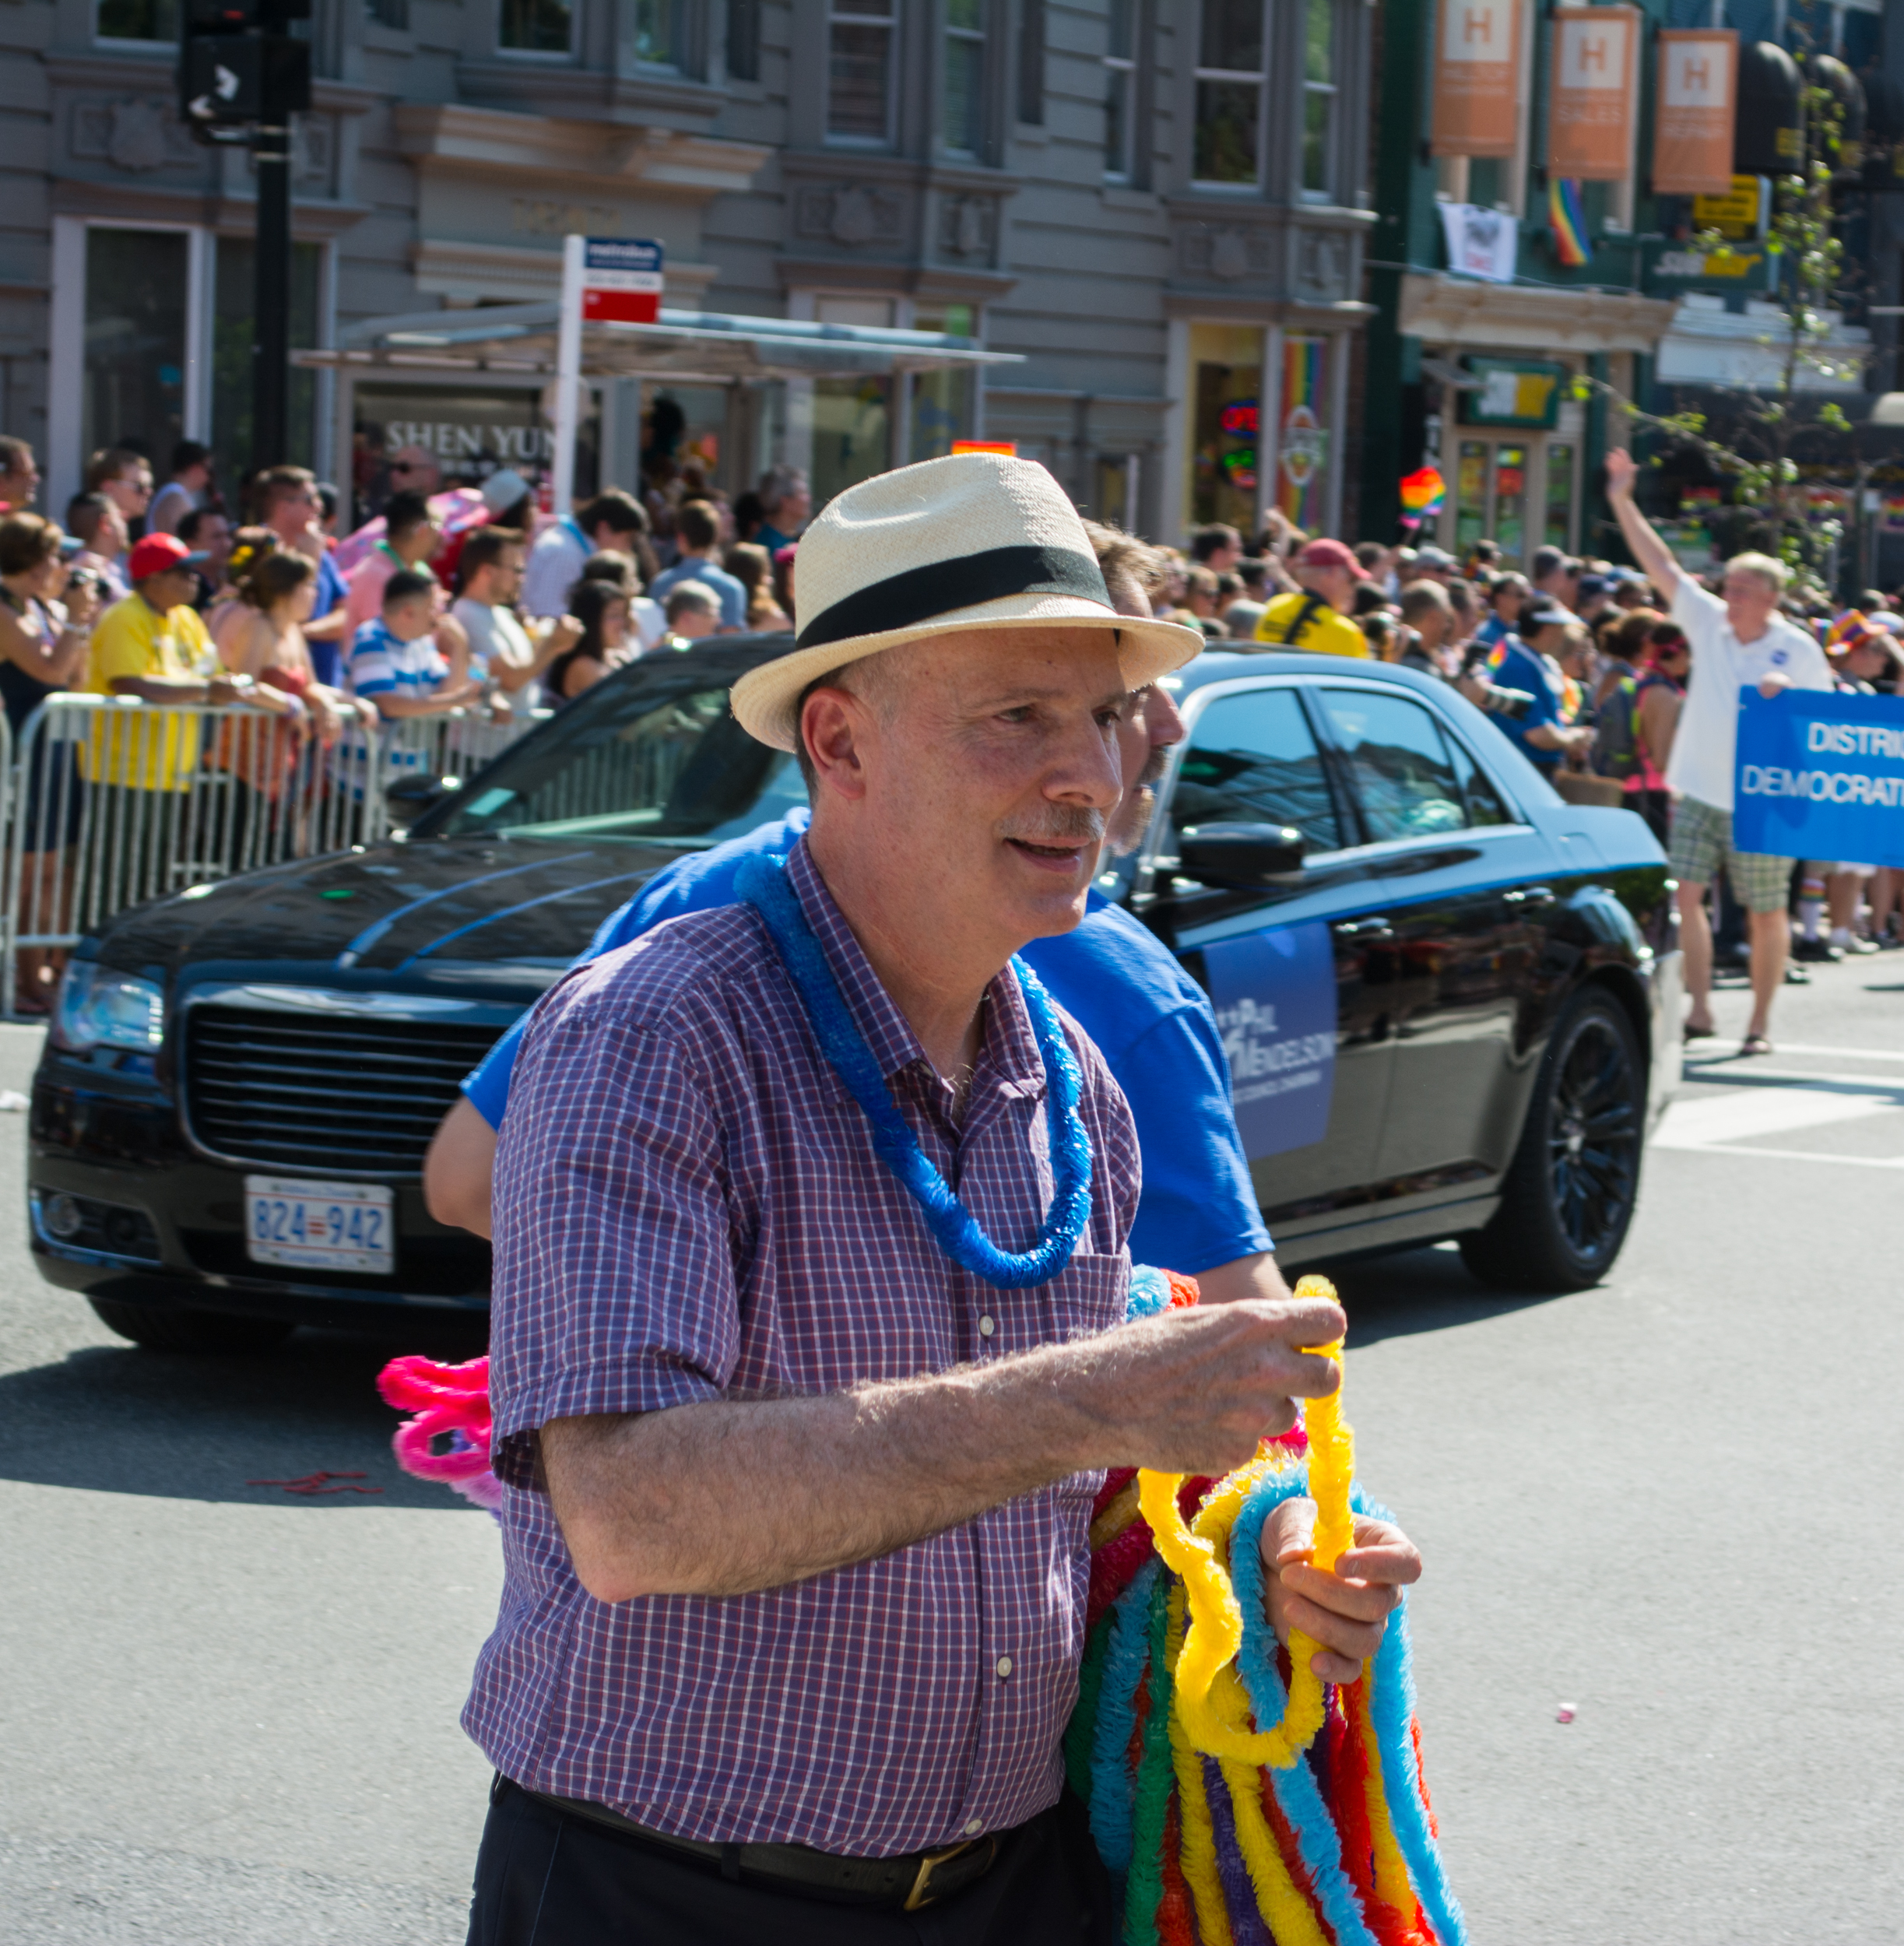 Phil Mendelson, Chairman of the Council of the District of Columbia, hands out necklaces and plastic leis to bystanders in the the Capital Pride gay pride parade on June 7, 2014, in Washington, D.C., in the United States. (Photo by Tim Evanson [CC BY-SA 2.0 (http://creativecommons.org/licenses/by-sa/2.0)], via Wikimedia Commons)